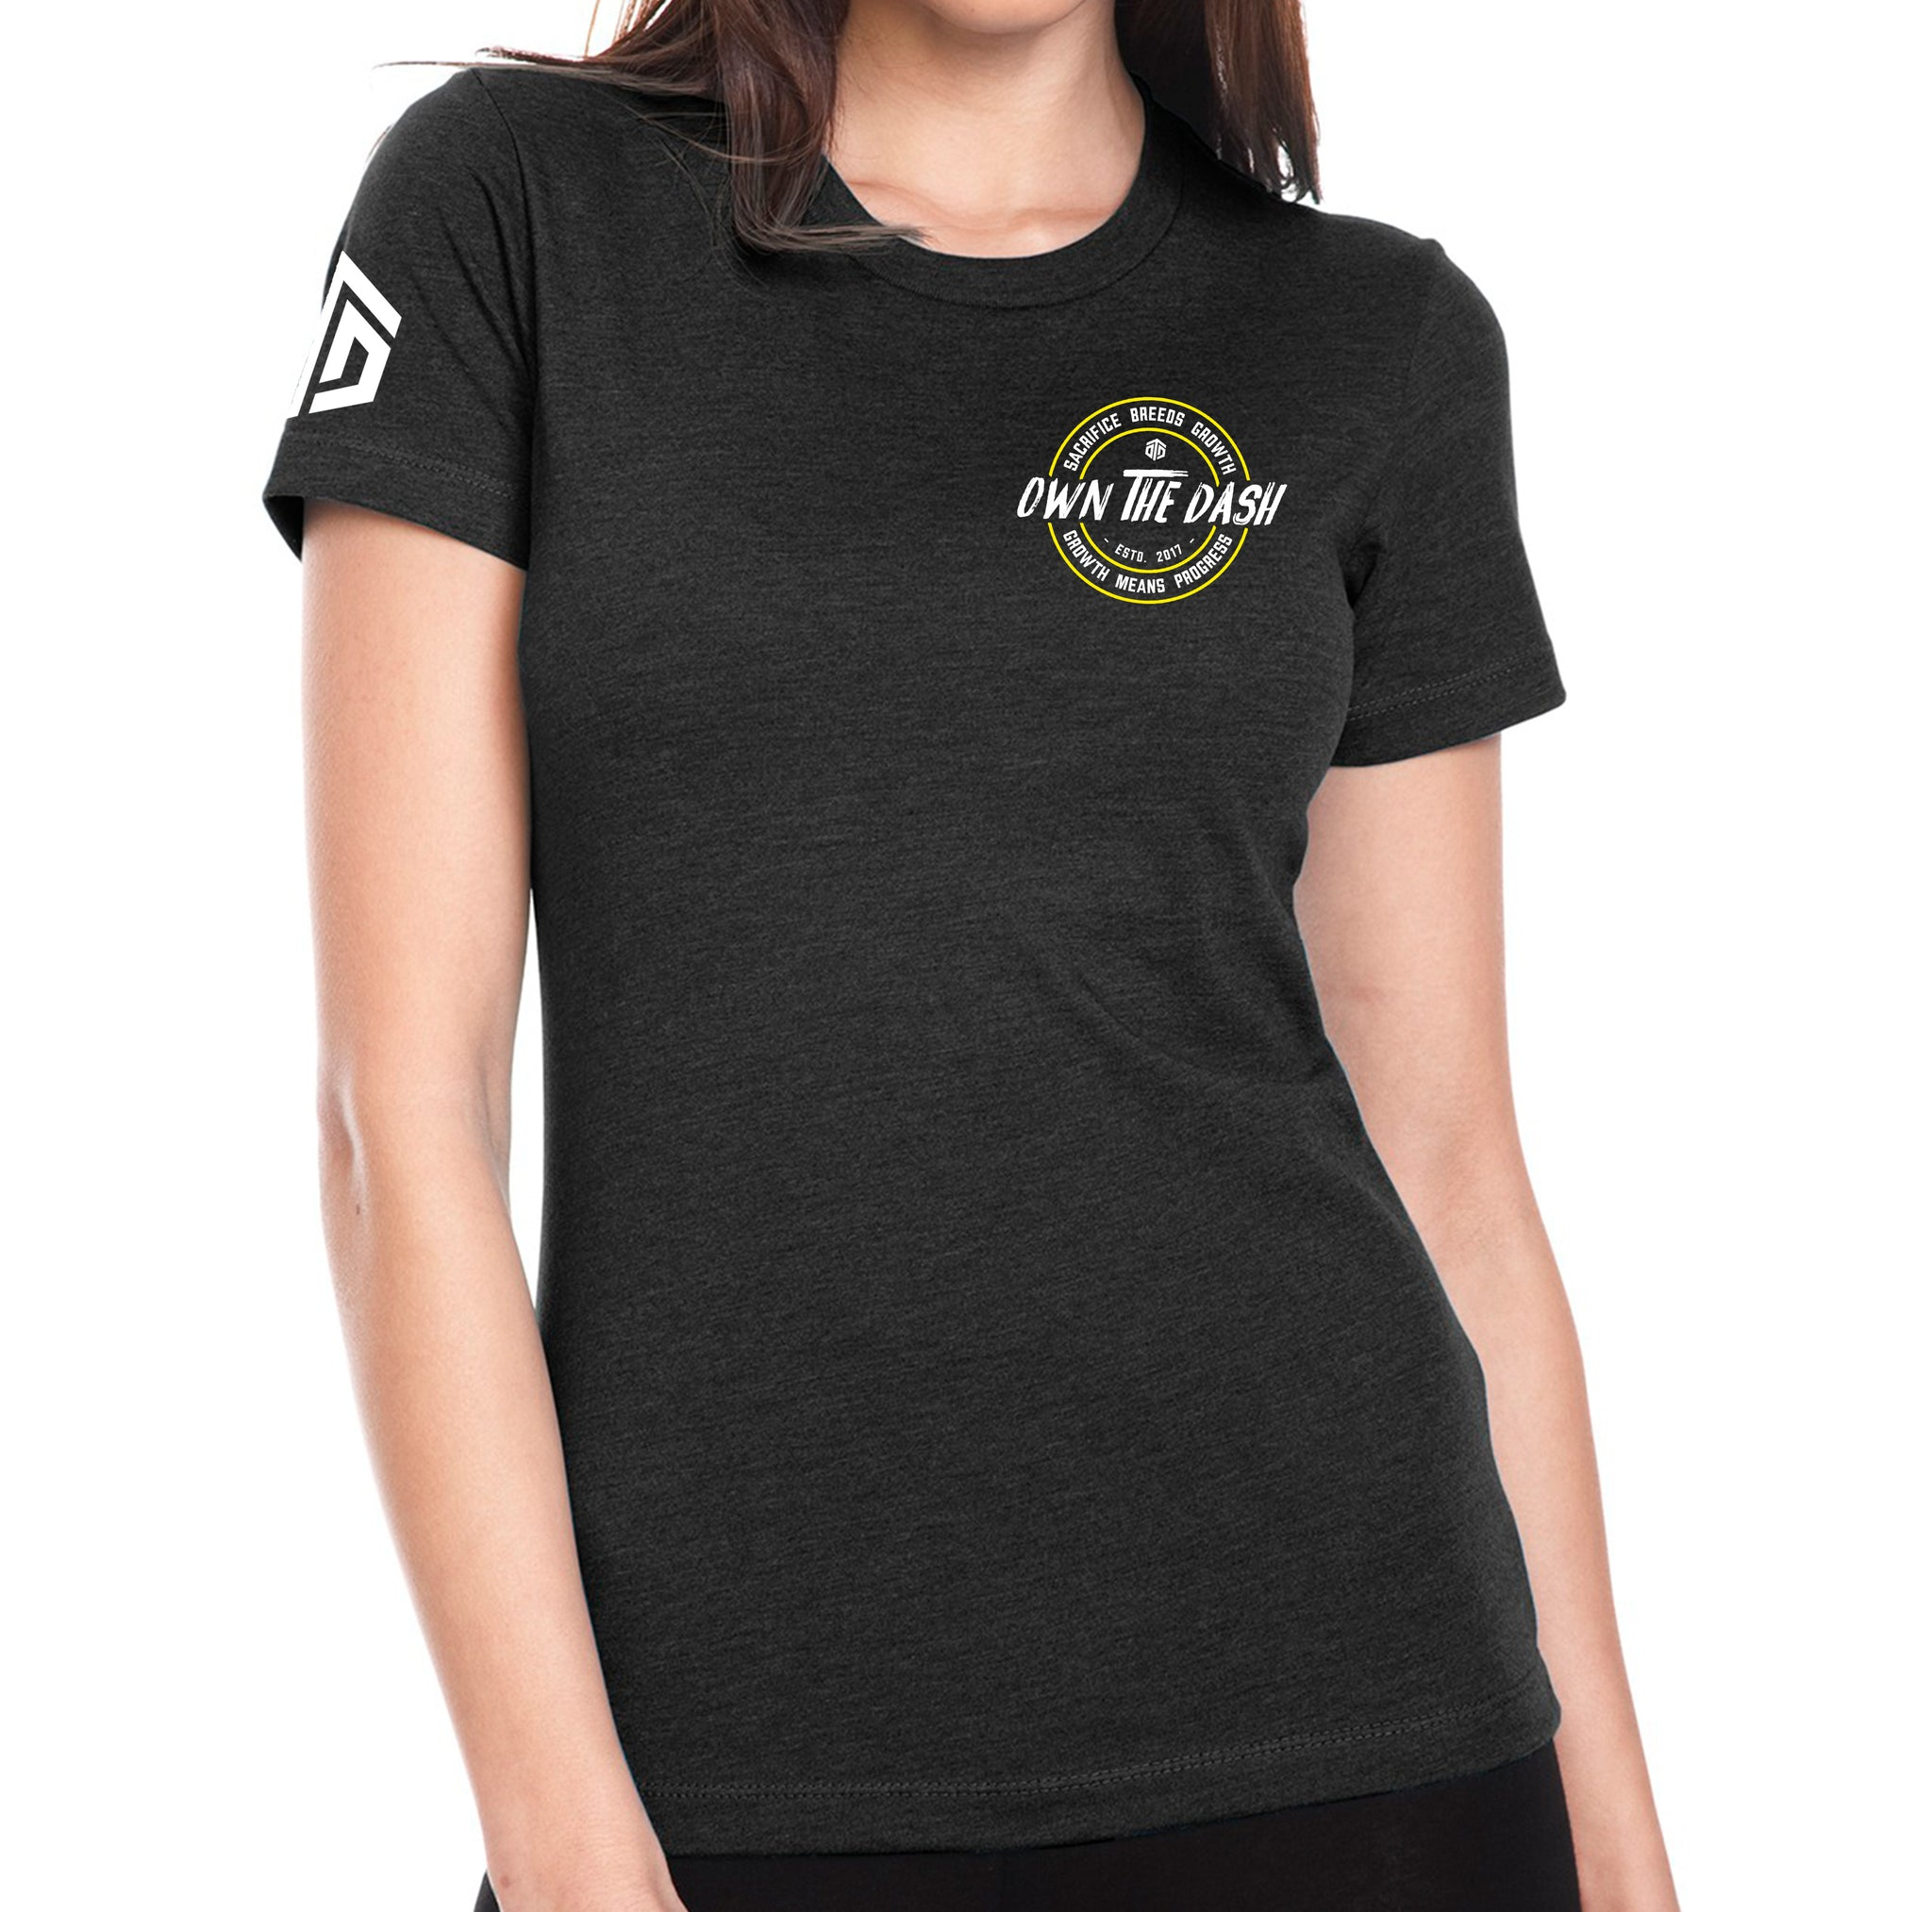 Sacrifice Breeds Growth Ladies Shirt